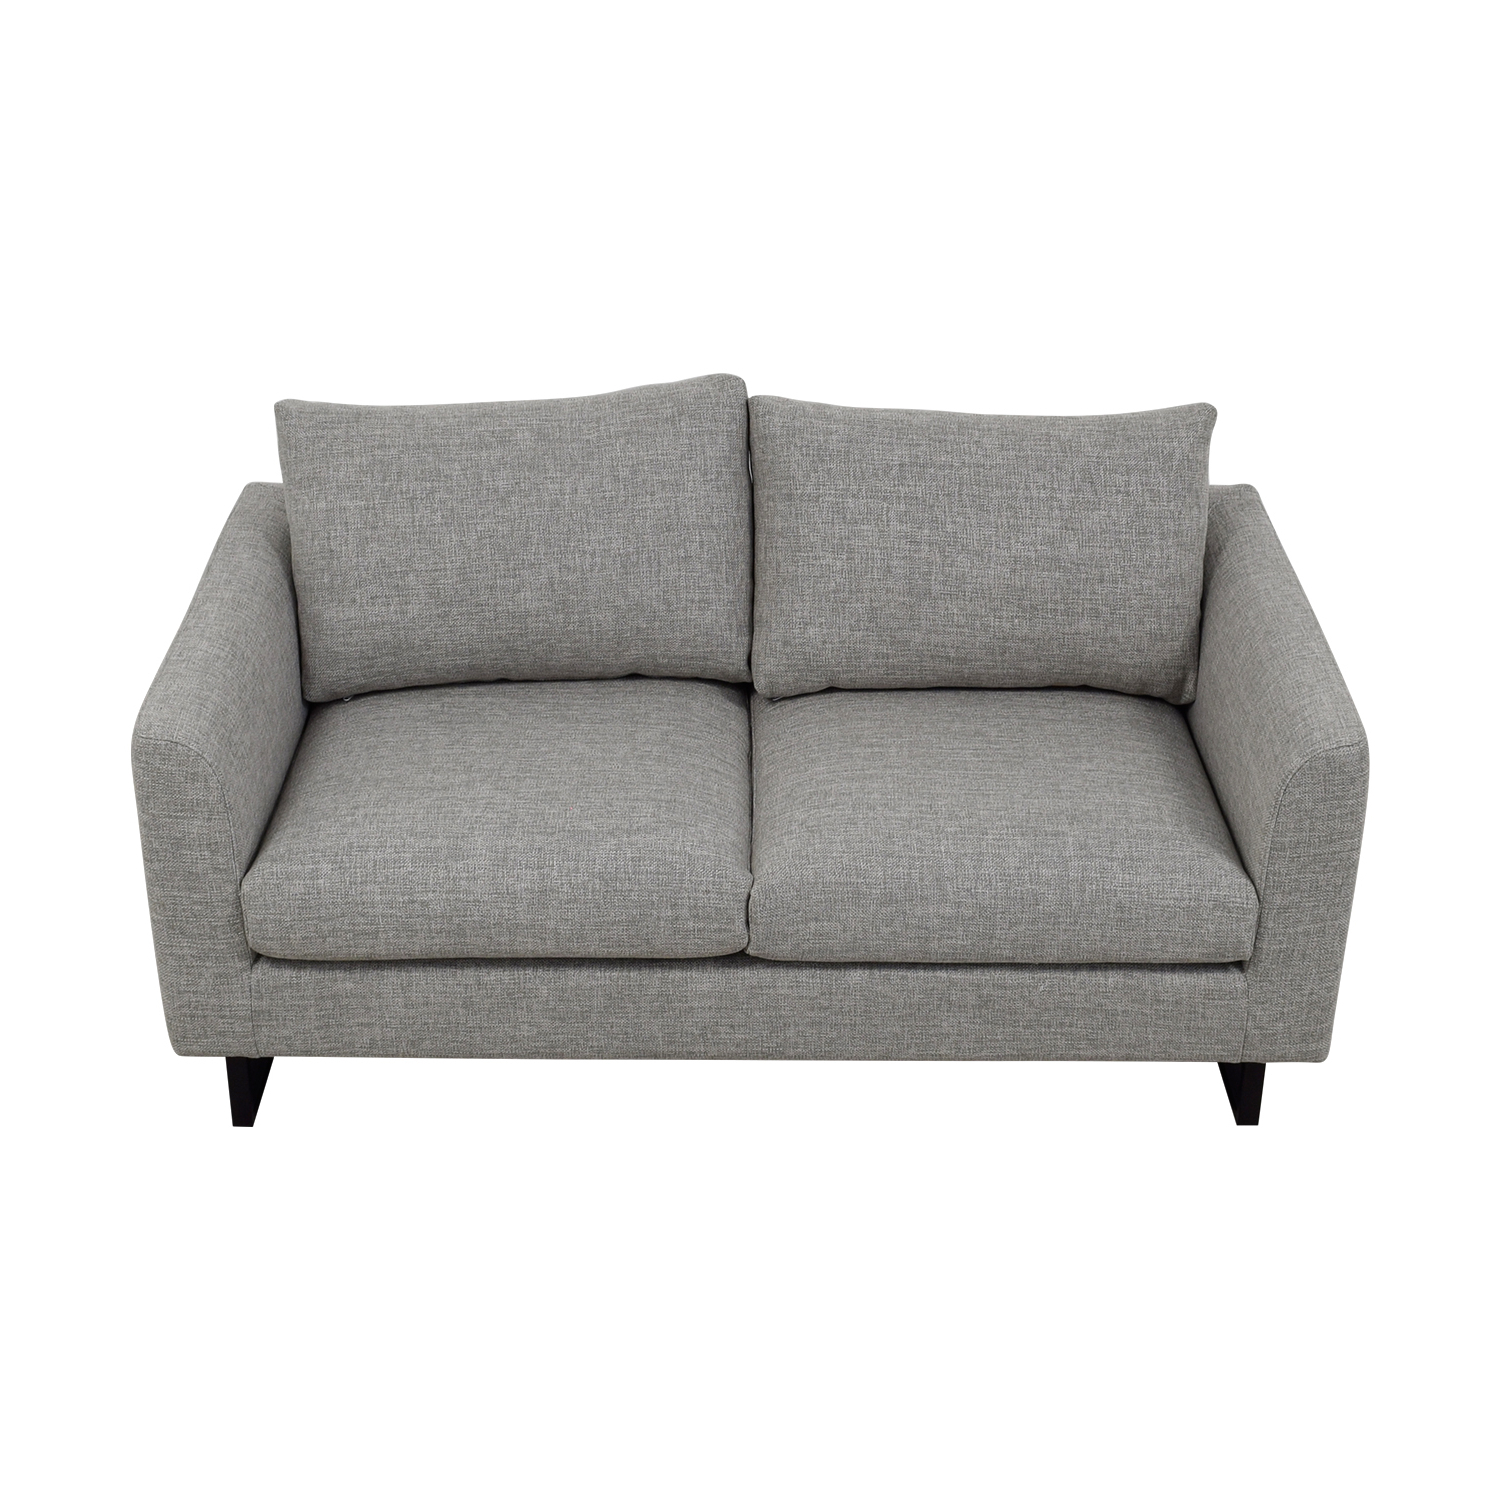 [%63% Off – Owens Gray Loveseat / Sofas Pertaining To 2020 Owens Loveseats With Cushion|owens Loveseats With Cushion Pertaining To Most Current 63% Off – Owens Gray Loveseat / Sofas|2020 Owens Loveseats With Cushion Throughout 63% Off – Owens Gray Loveseat / Sofas|most Current 63% Off – Owens Gray Loveseat / Sofas With Owens Loveseats With Cushion%] (View 4 of 20)